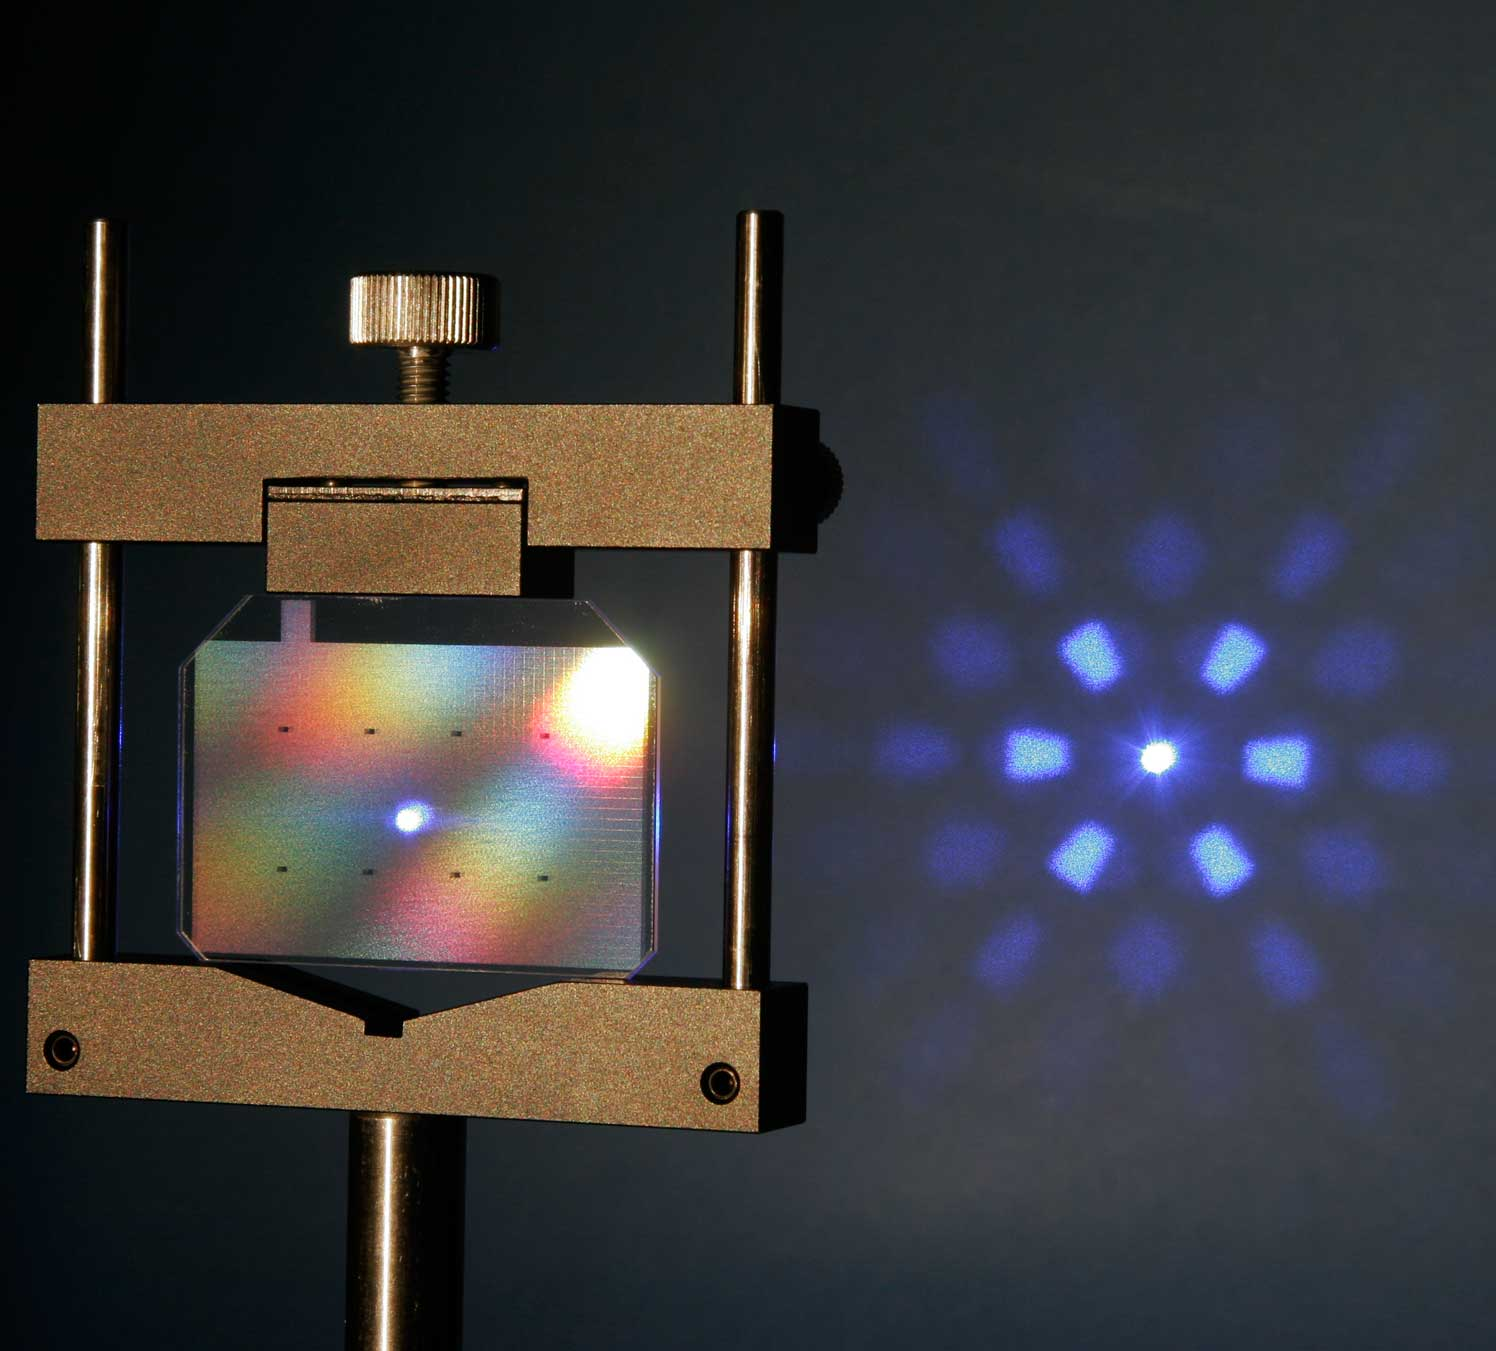 Diffractive Optical Elements (DOEs) to shape and split laser beams